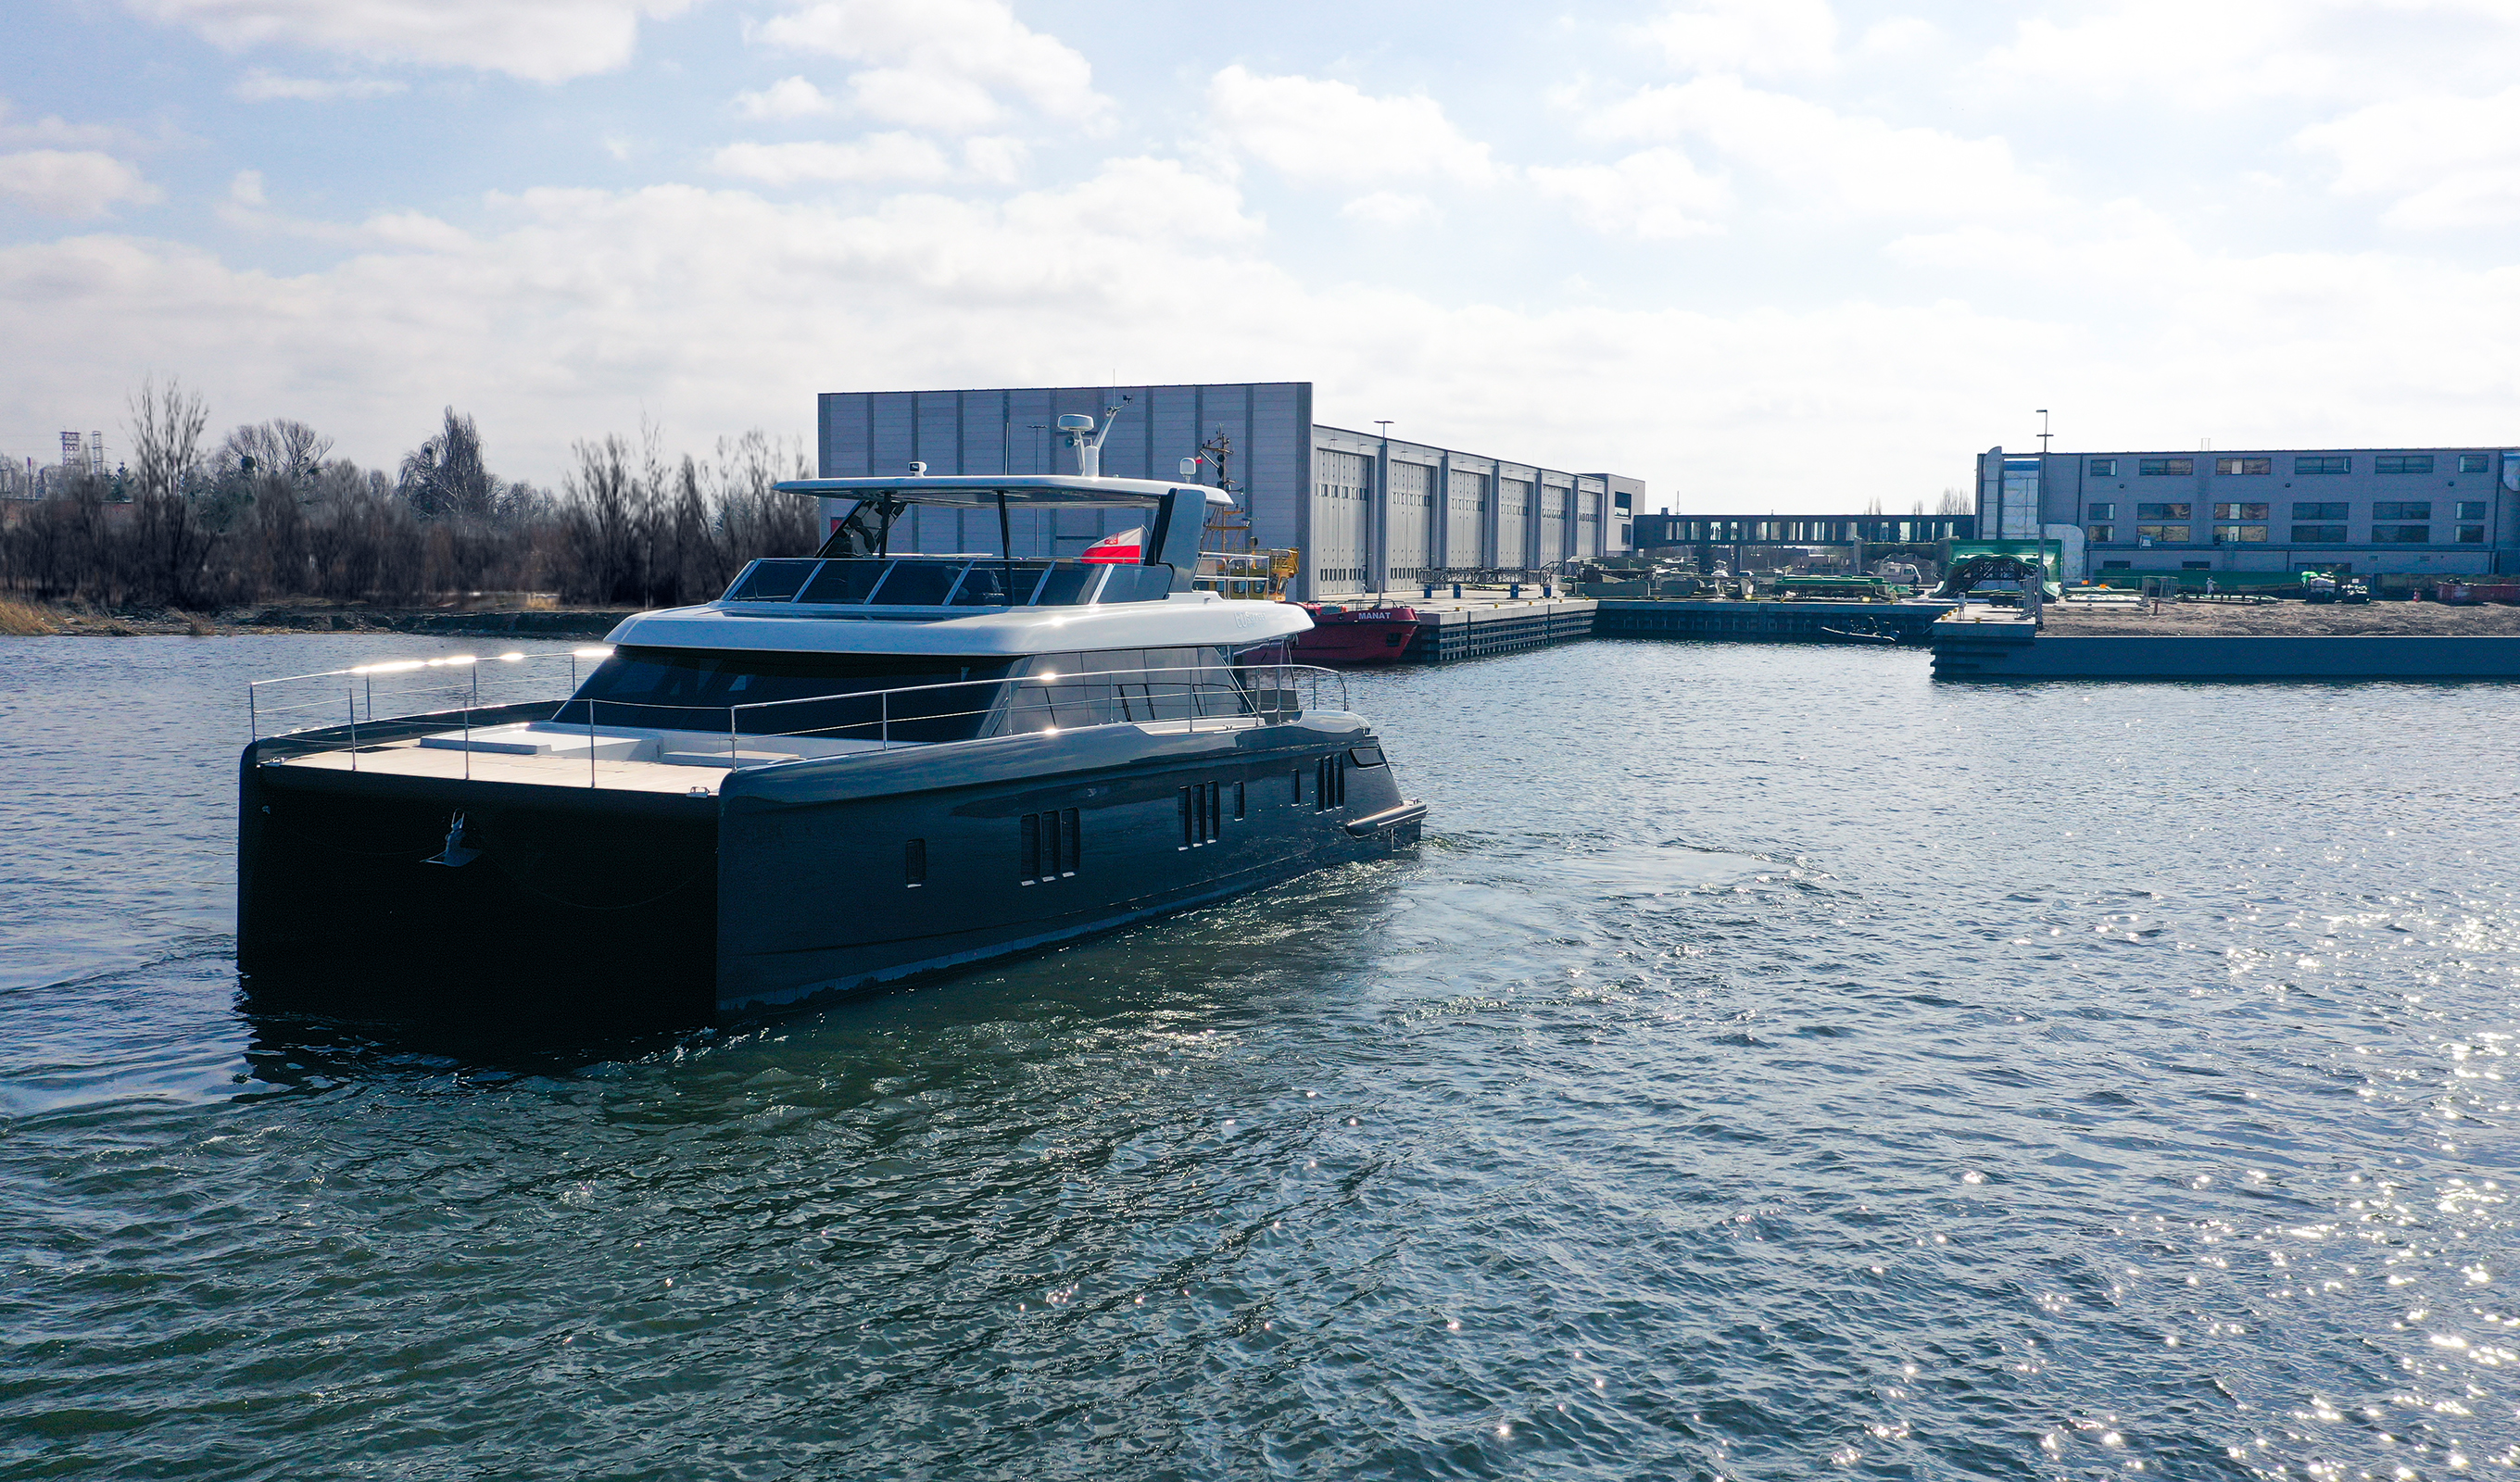 Un Nouveau 60 Sunreef Power rejoint la flotte